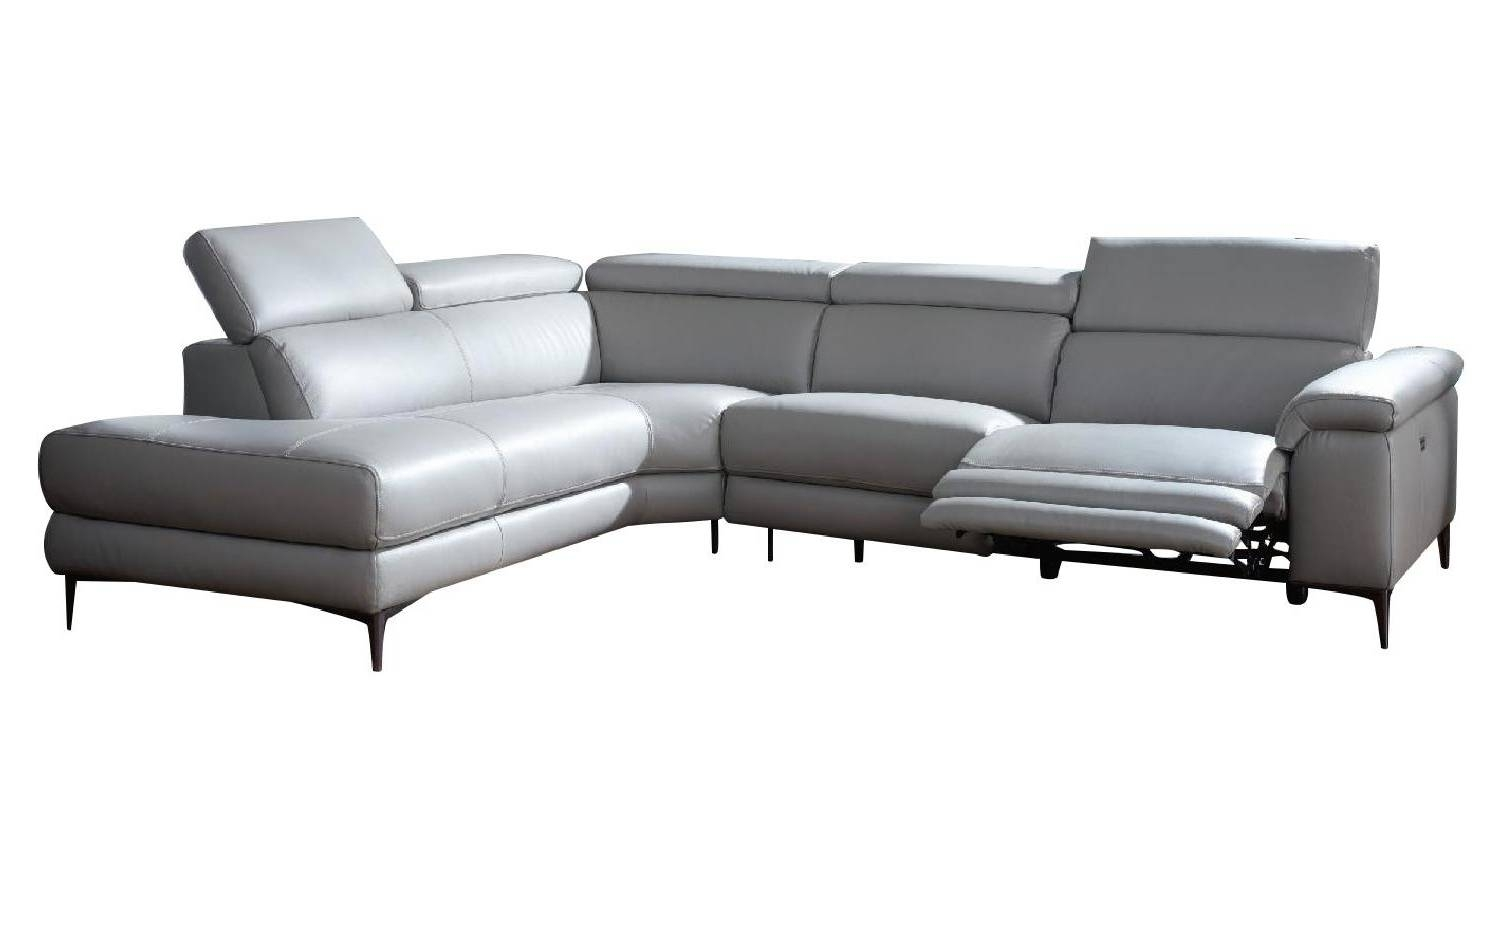 Axel Gray Sectional With Electric Recliner throughout Sectional Sofas With Electric Recliners (Image 3 of 30)